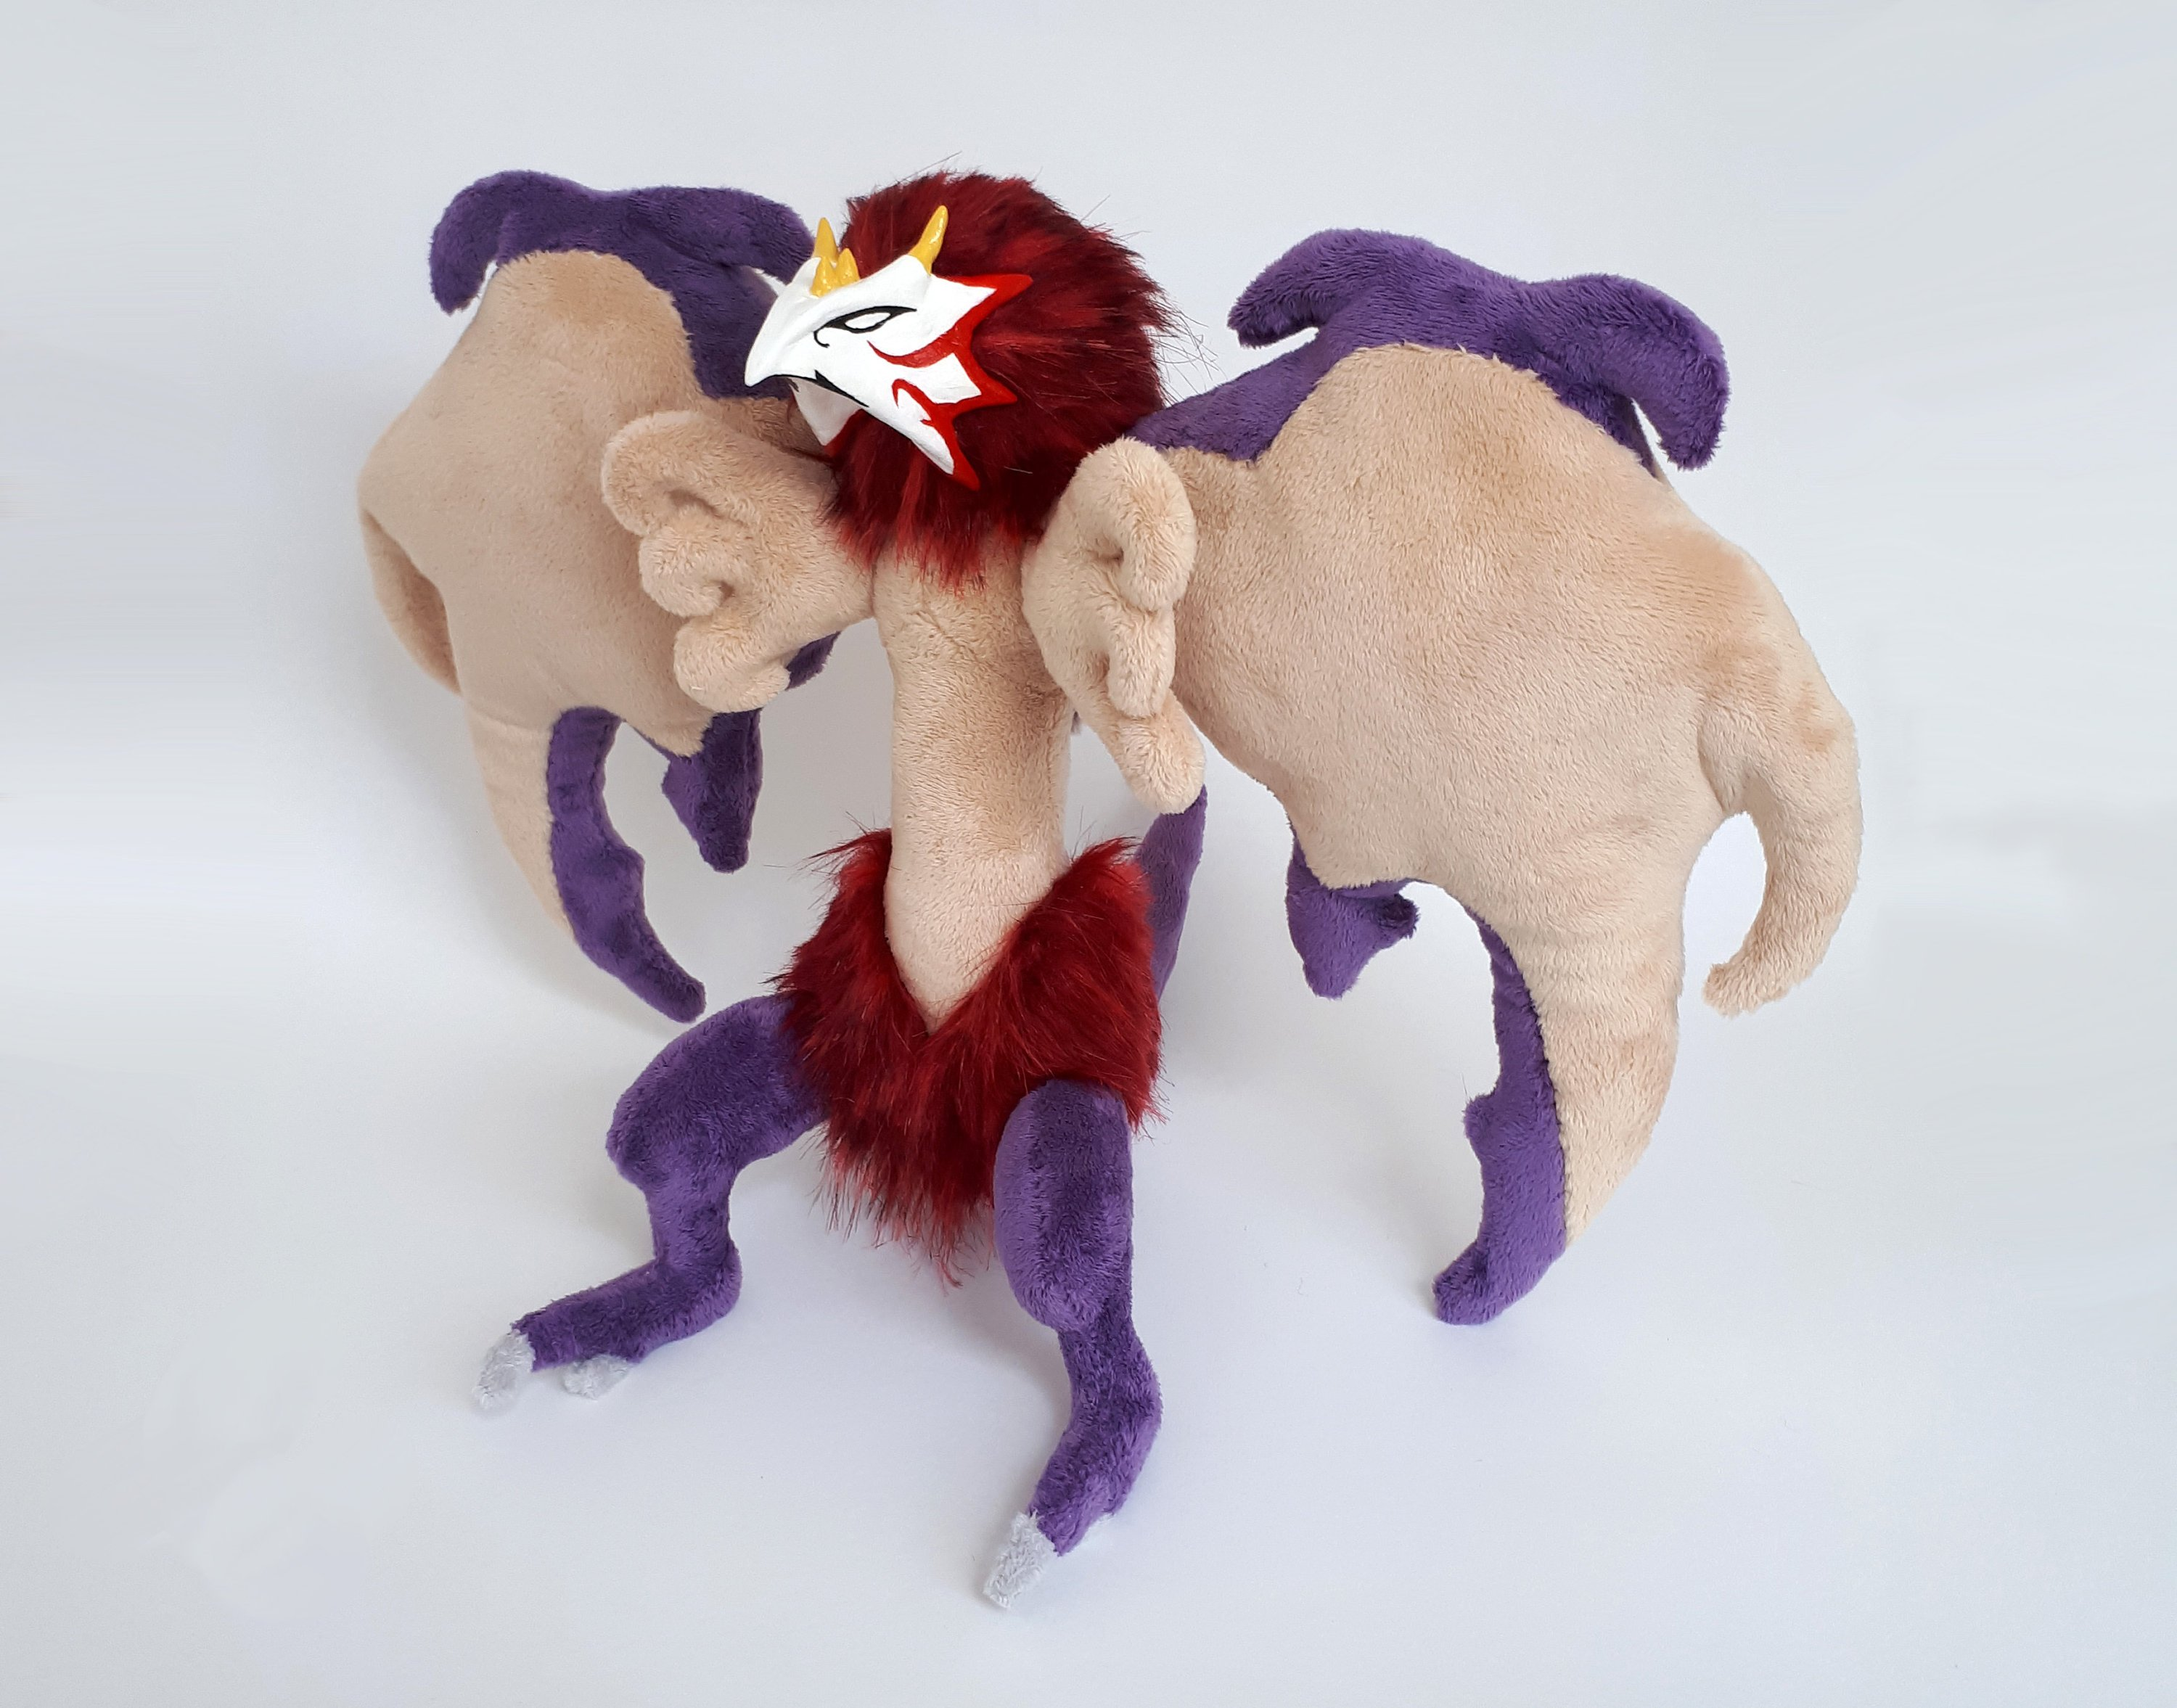 Valefor Plush - Final Fantasy X